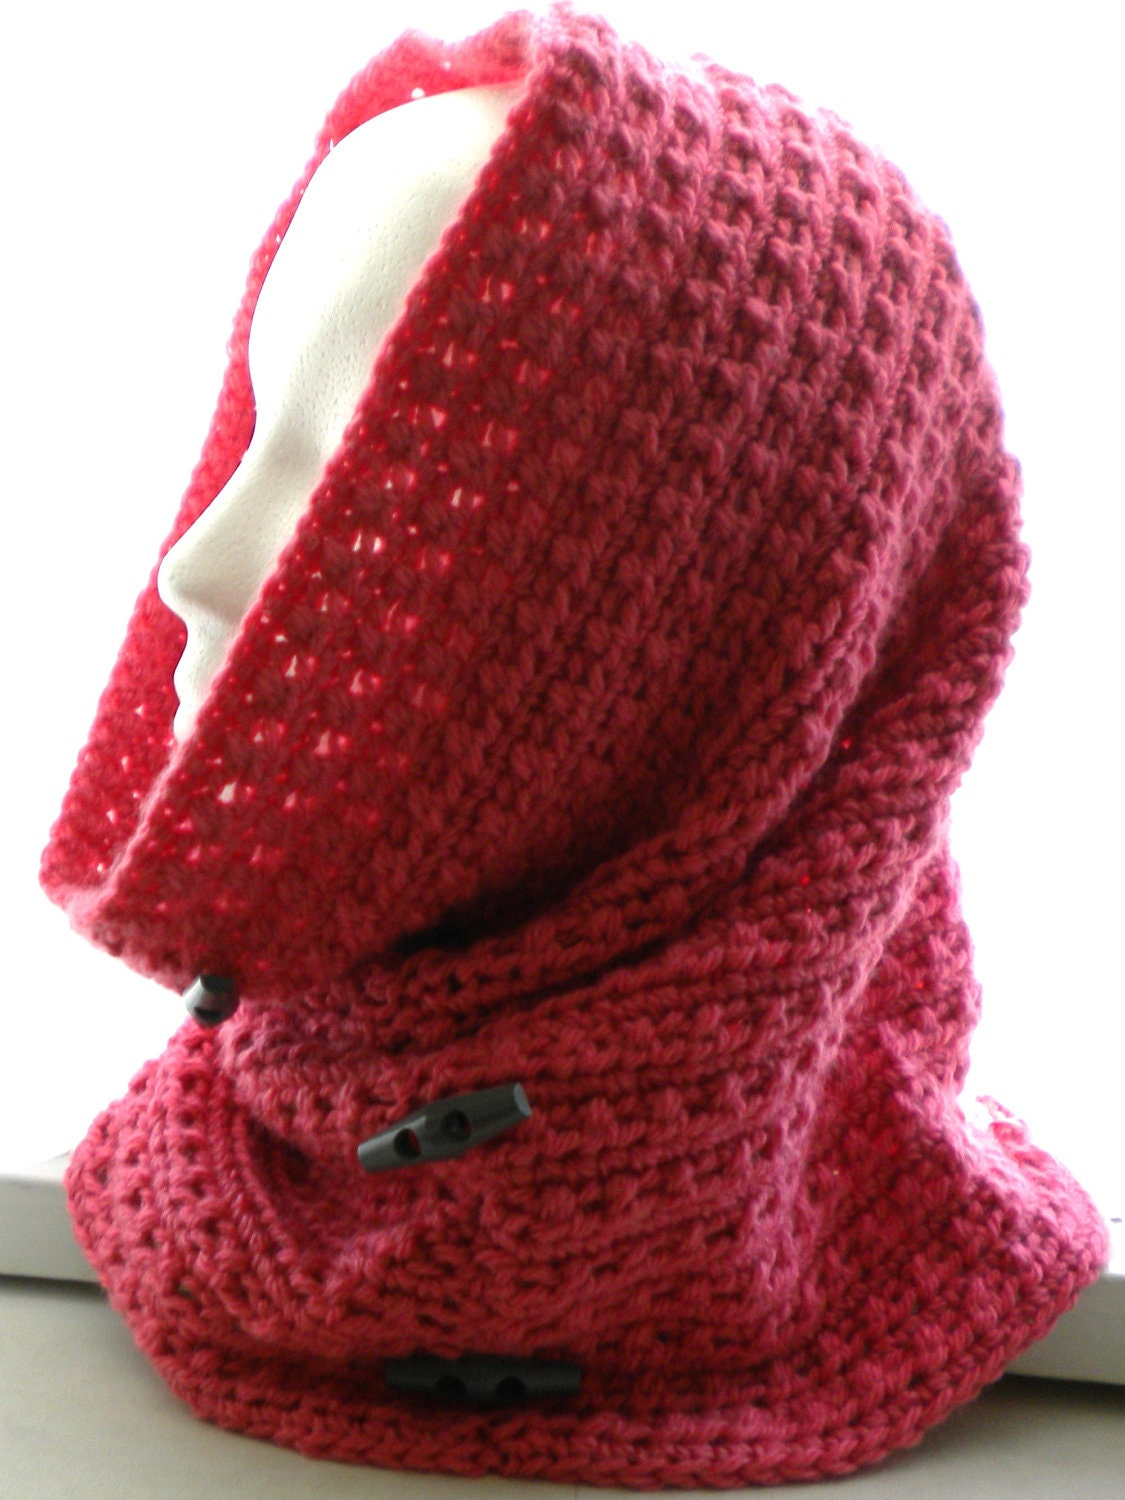 Crochet COWL /HOOD PATTERN with Decorative Buttons